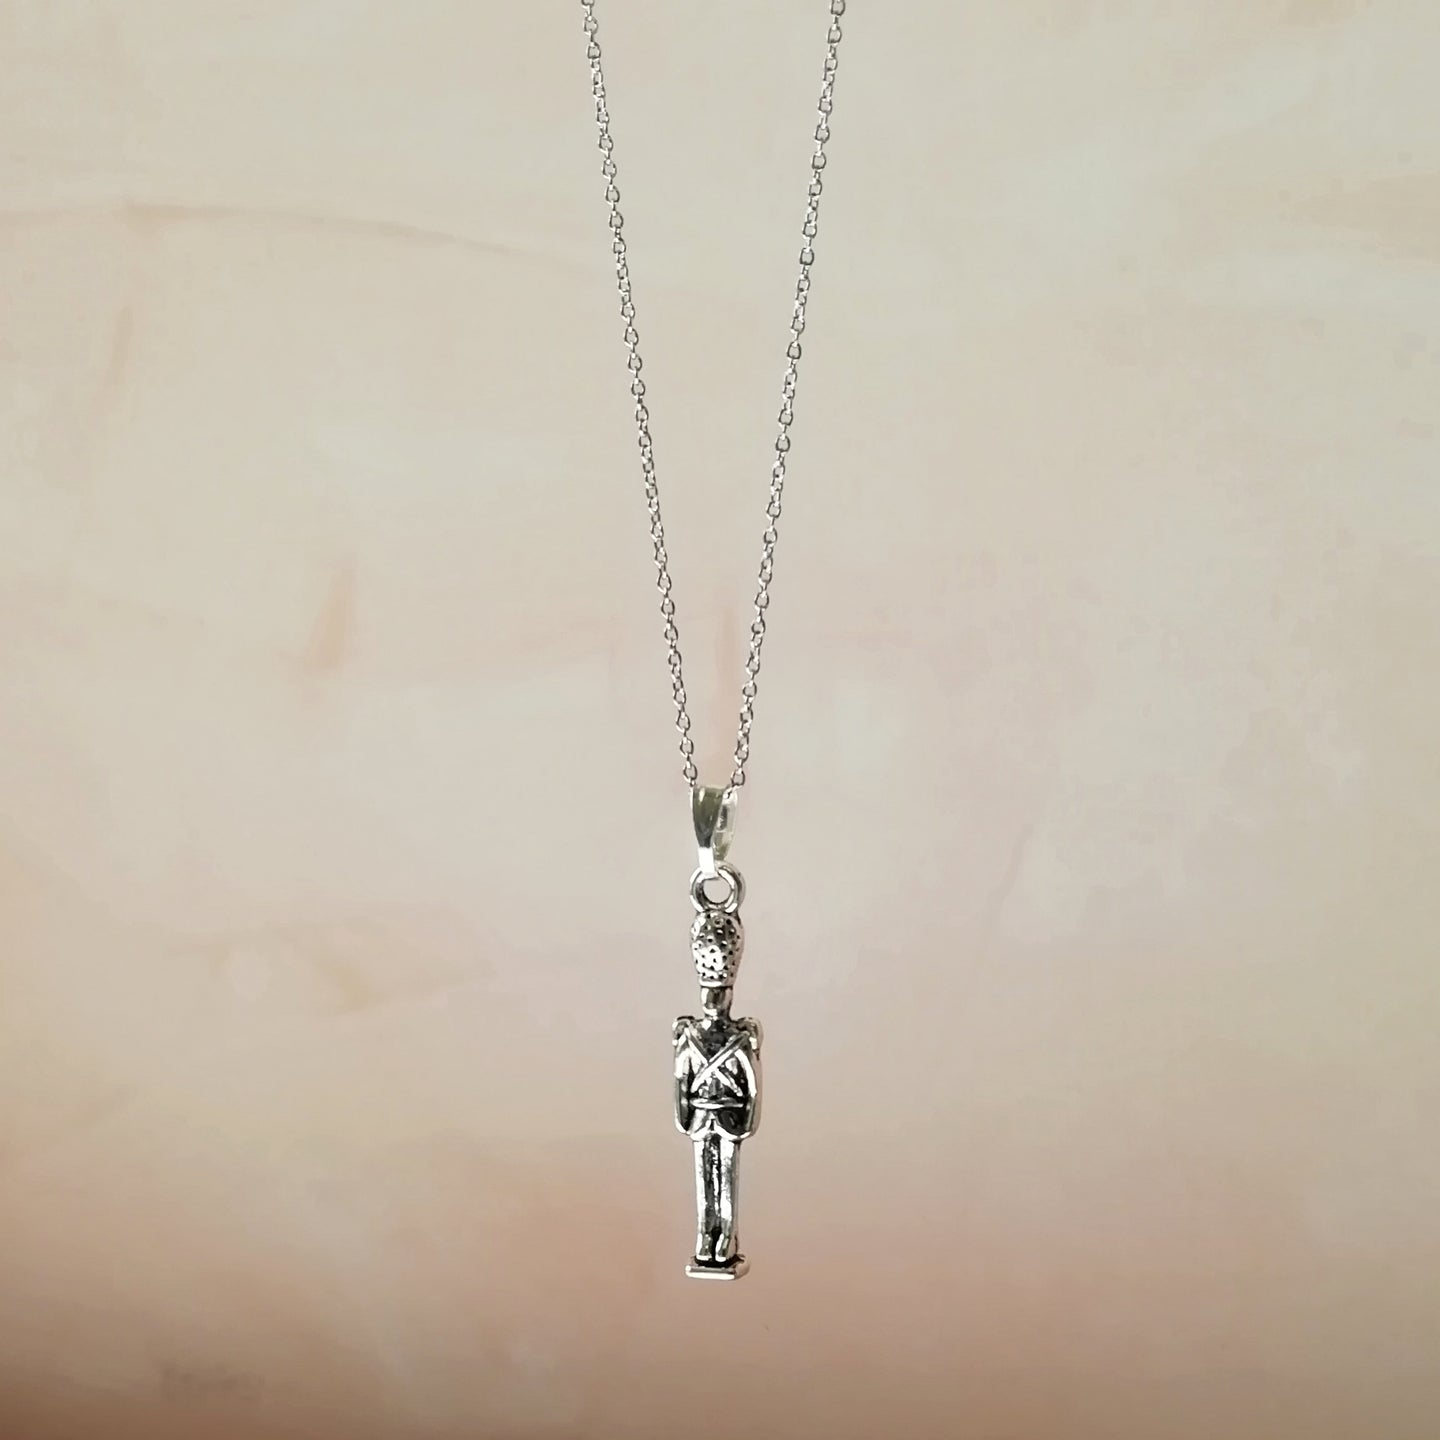 Beefeater Necklace